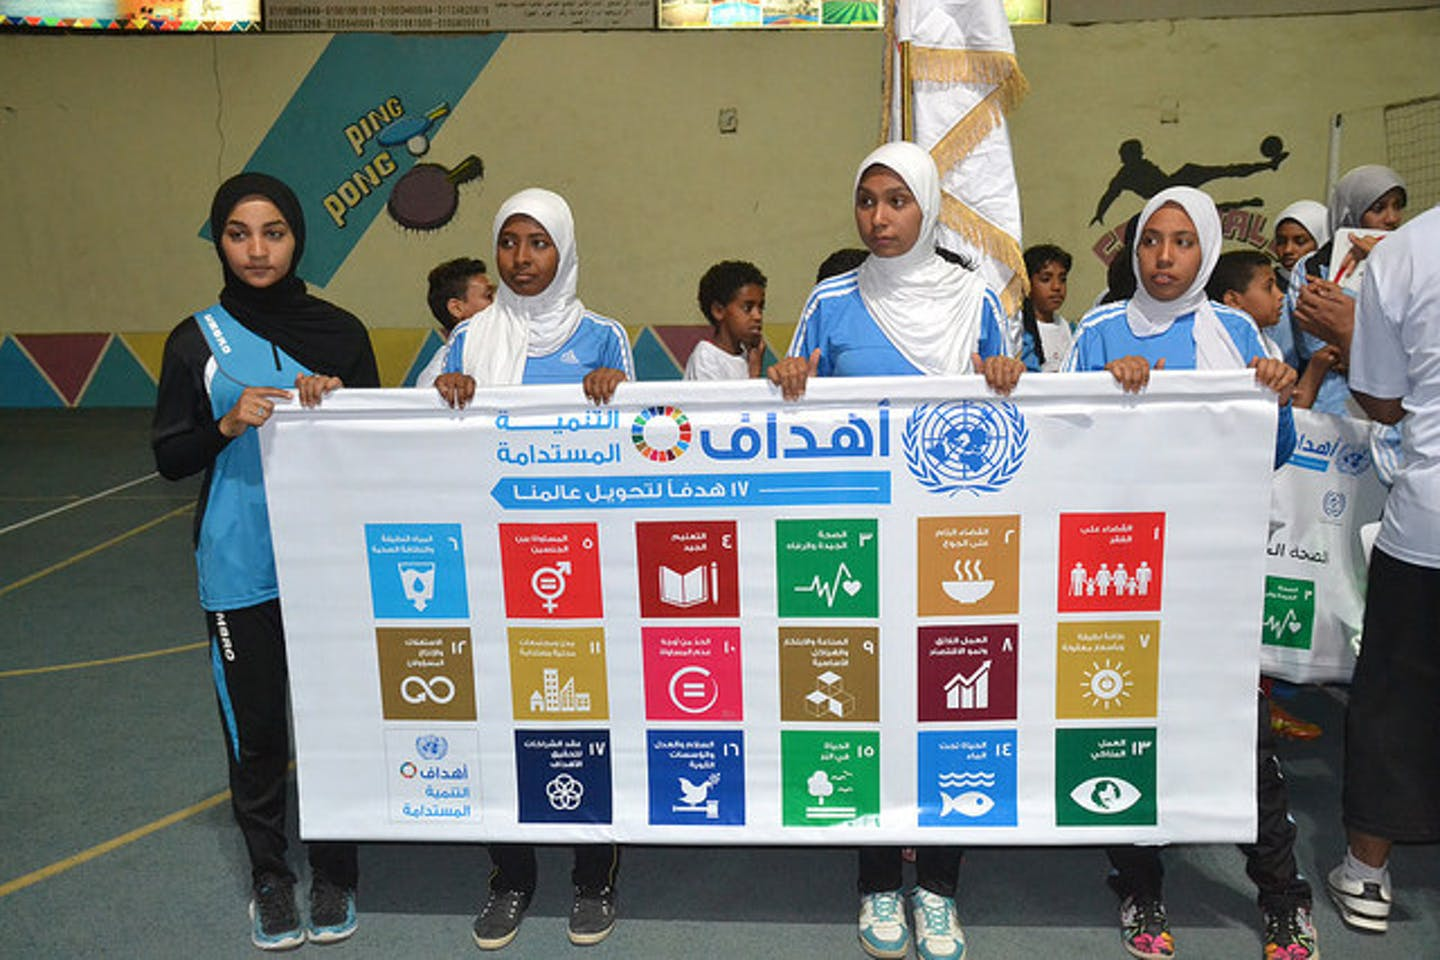 SDGs and students